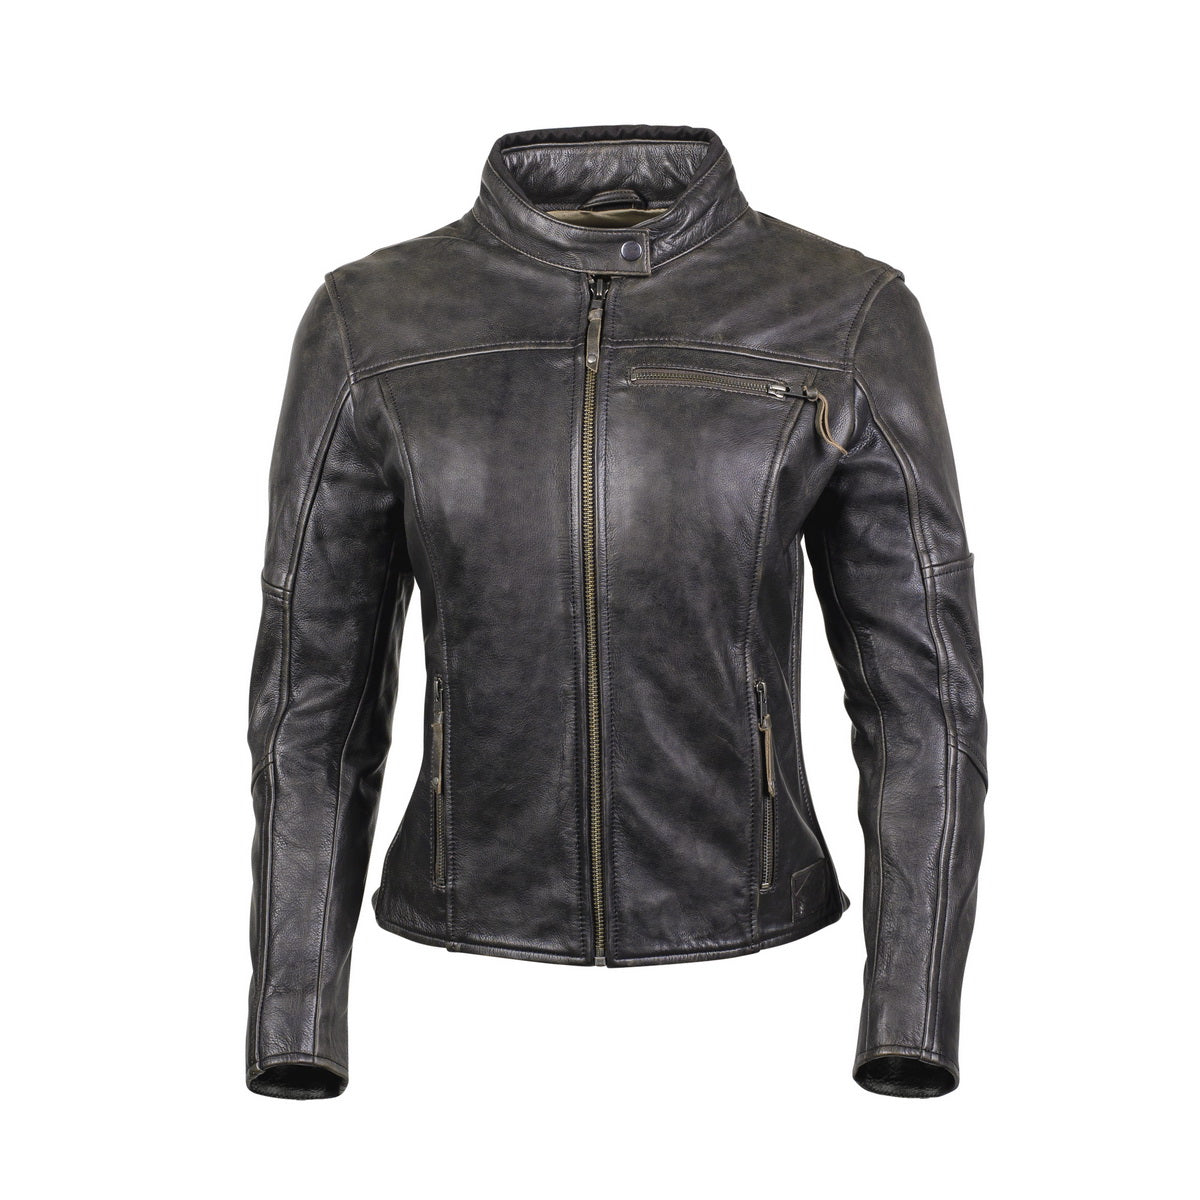 Cortech /'The Lolo/' Women/'s Brown Traditional Premium Leather Jacket with SAS-TEC Armor